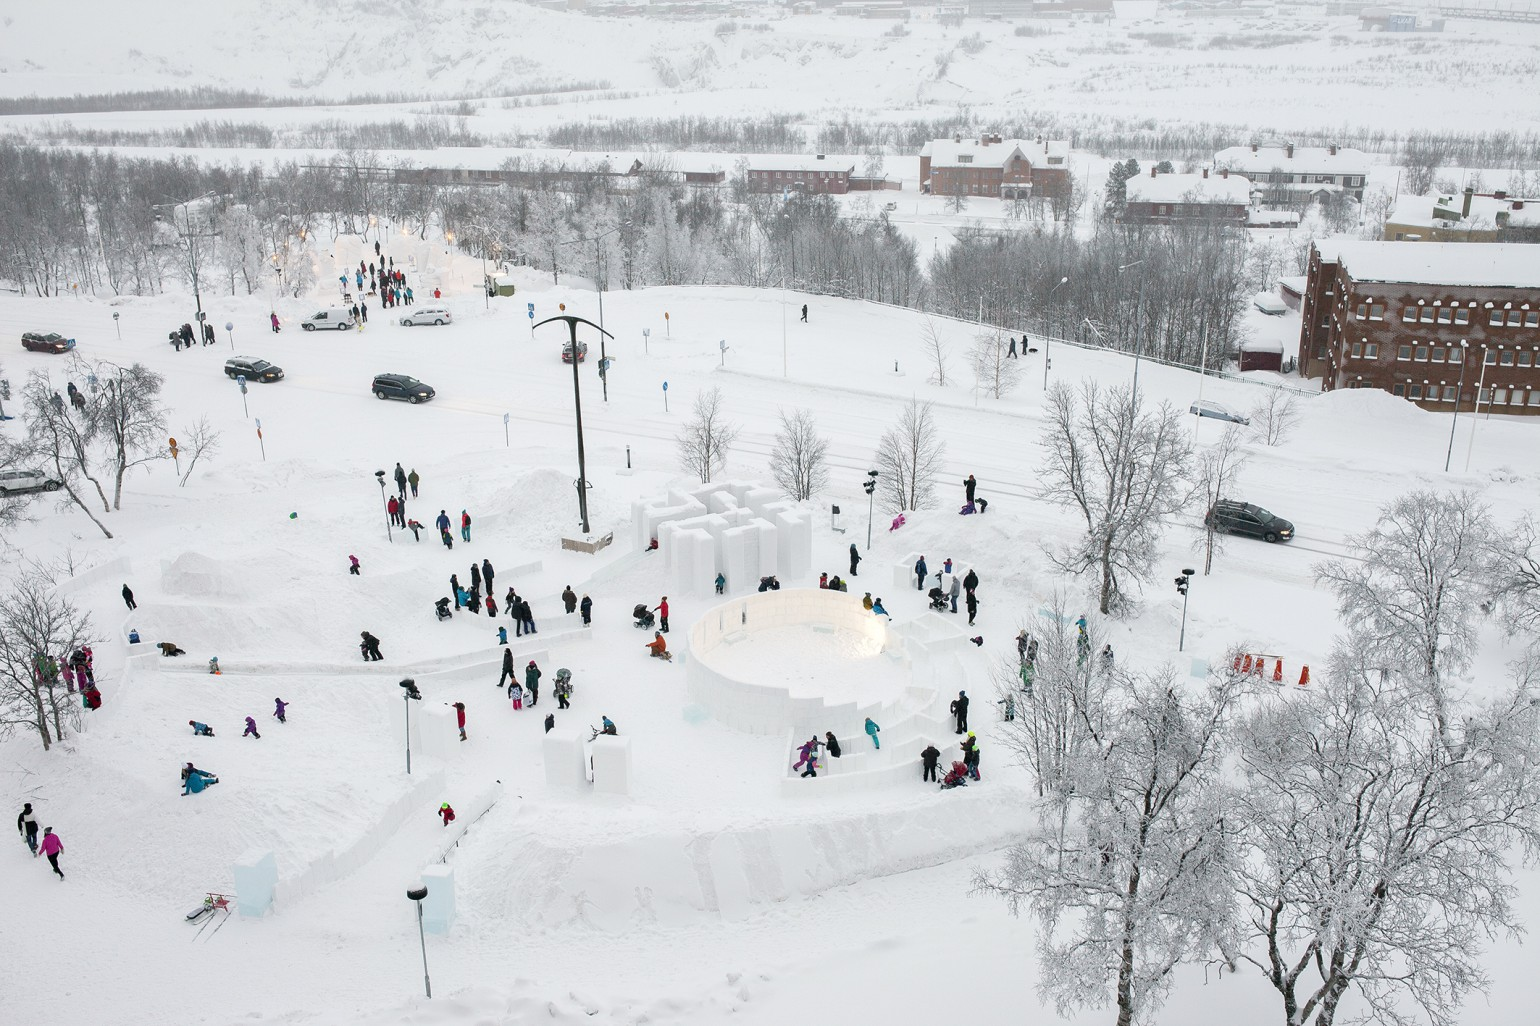 Kiruna_Winter_playground_2016_Image_3_Photo_Christian_Stromqvist